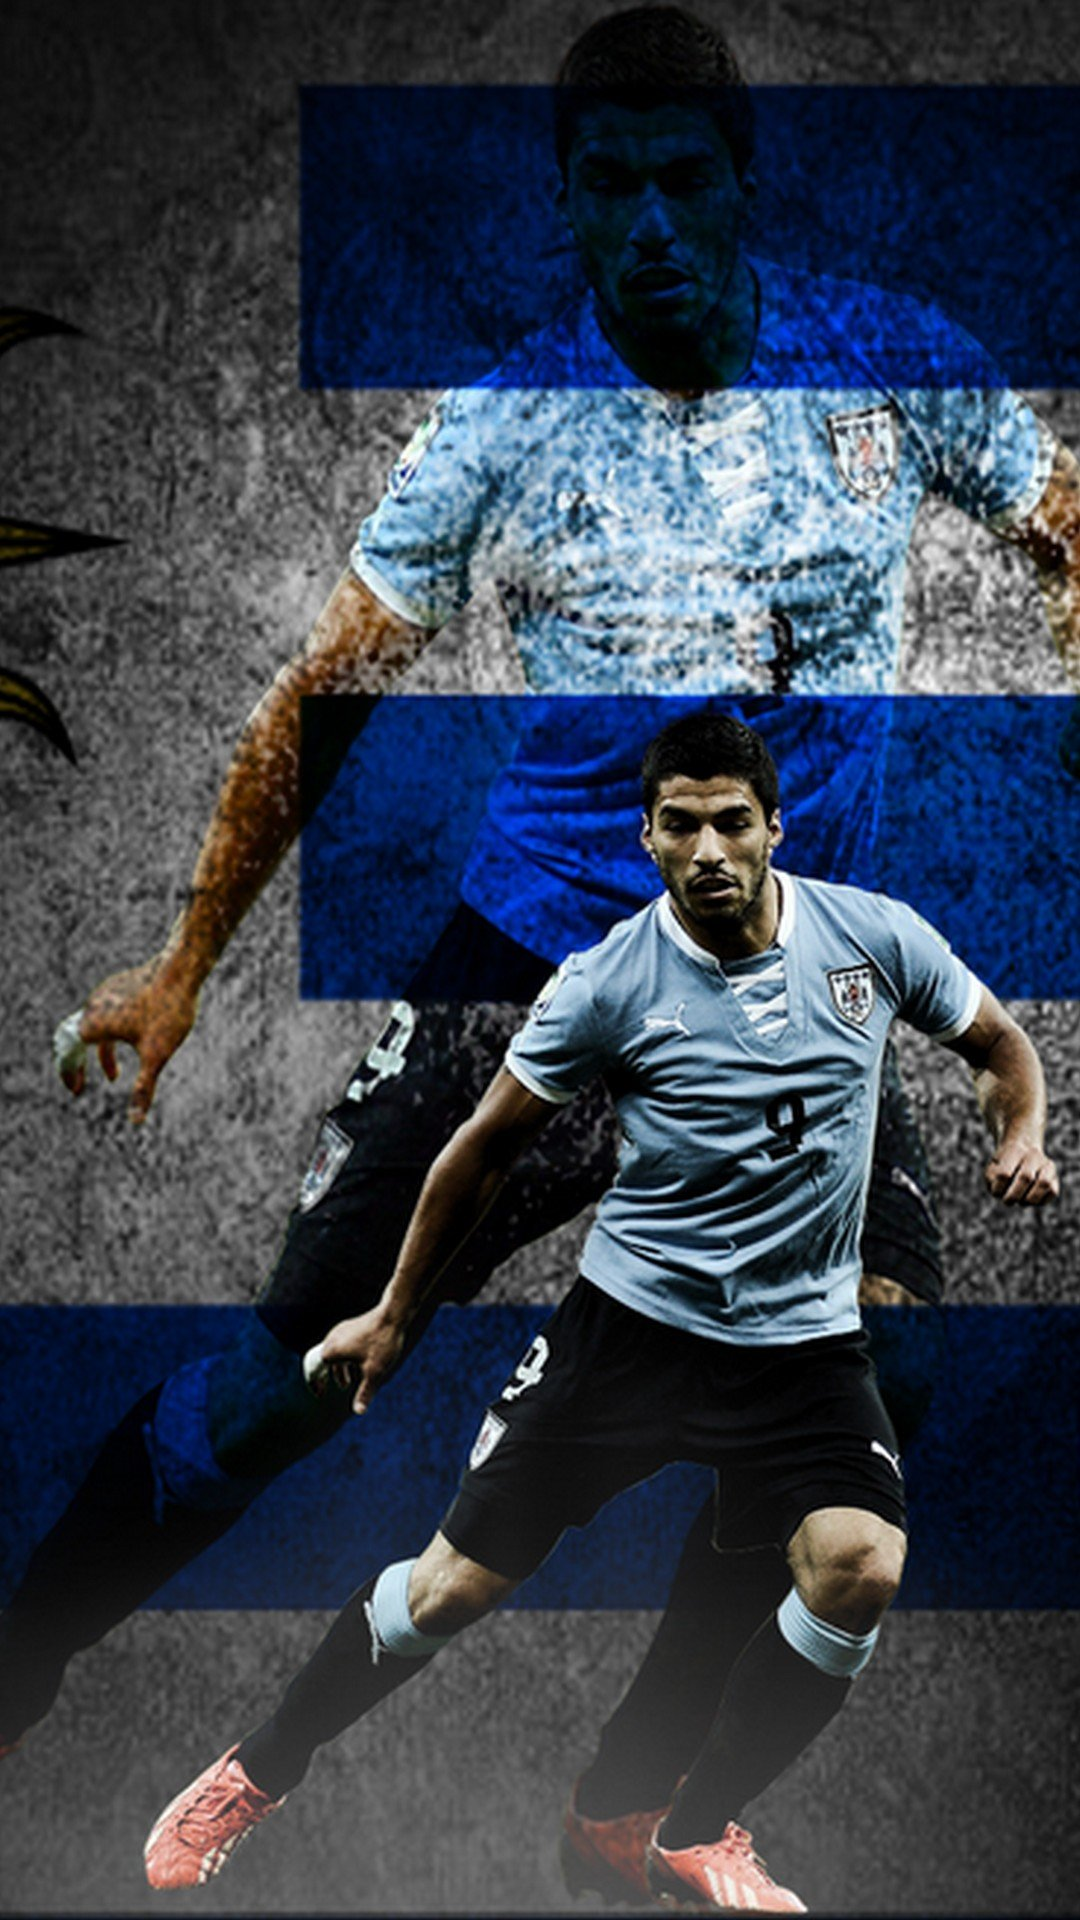 Luis Suarez Uruguay iPhone Wallpaper 2019 3D iPhone Wallpaper 1080x1920